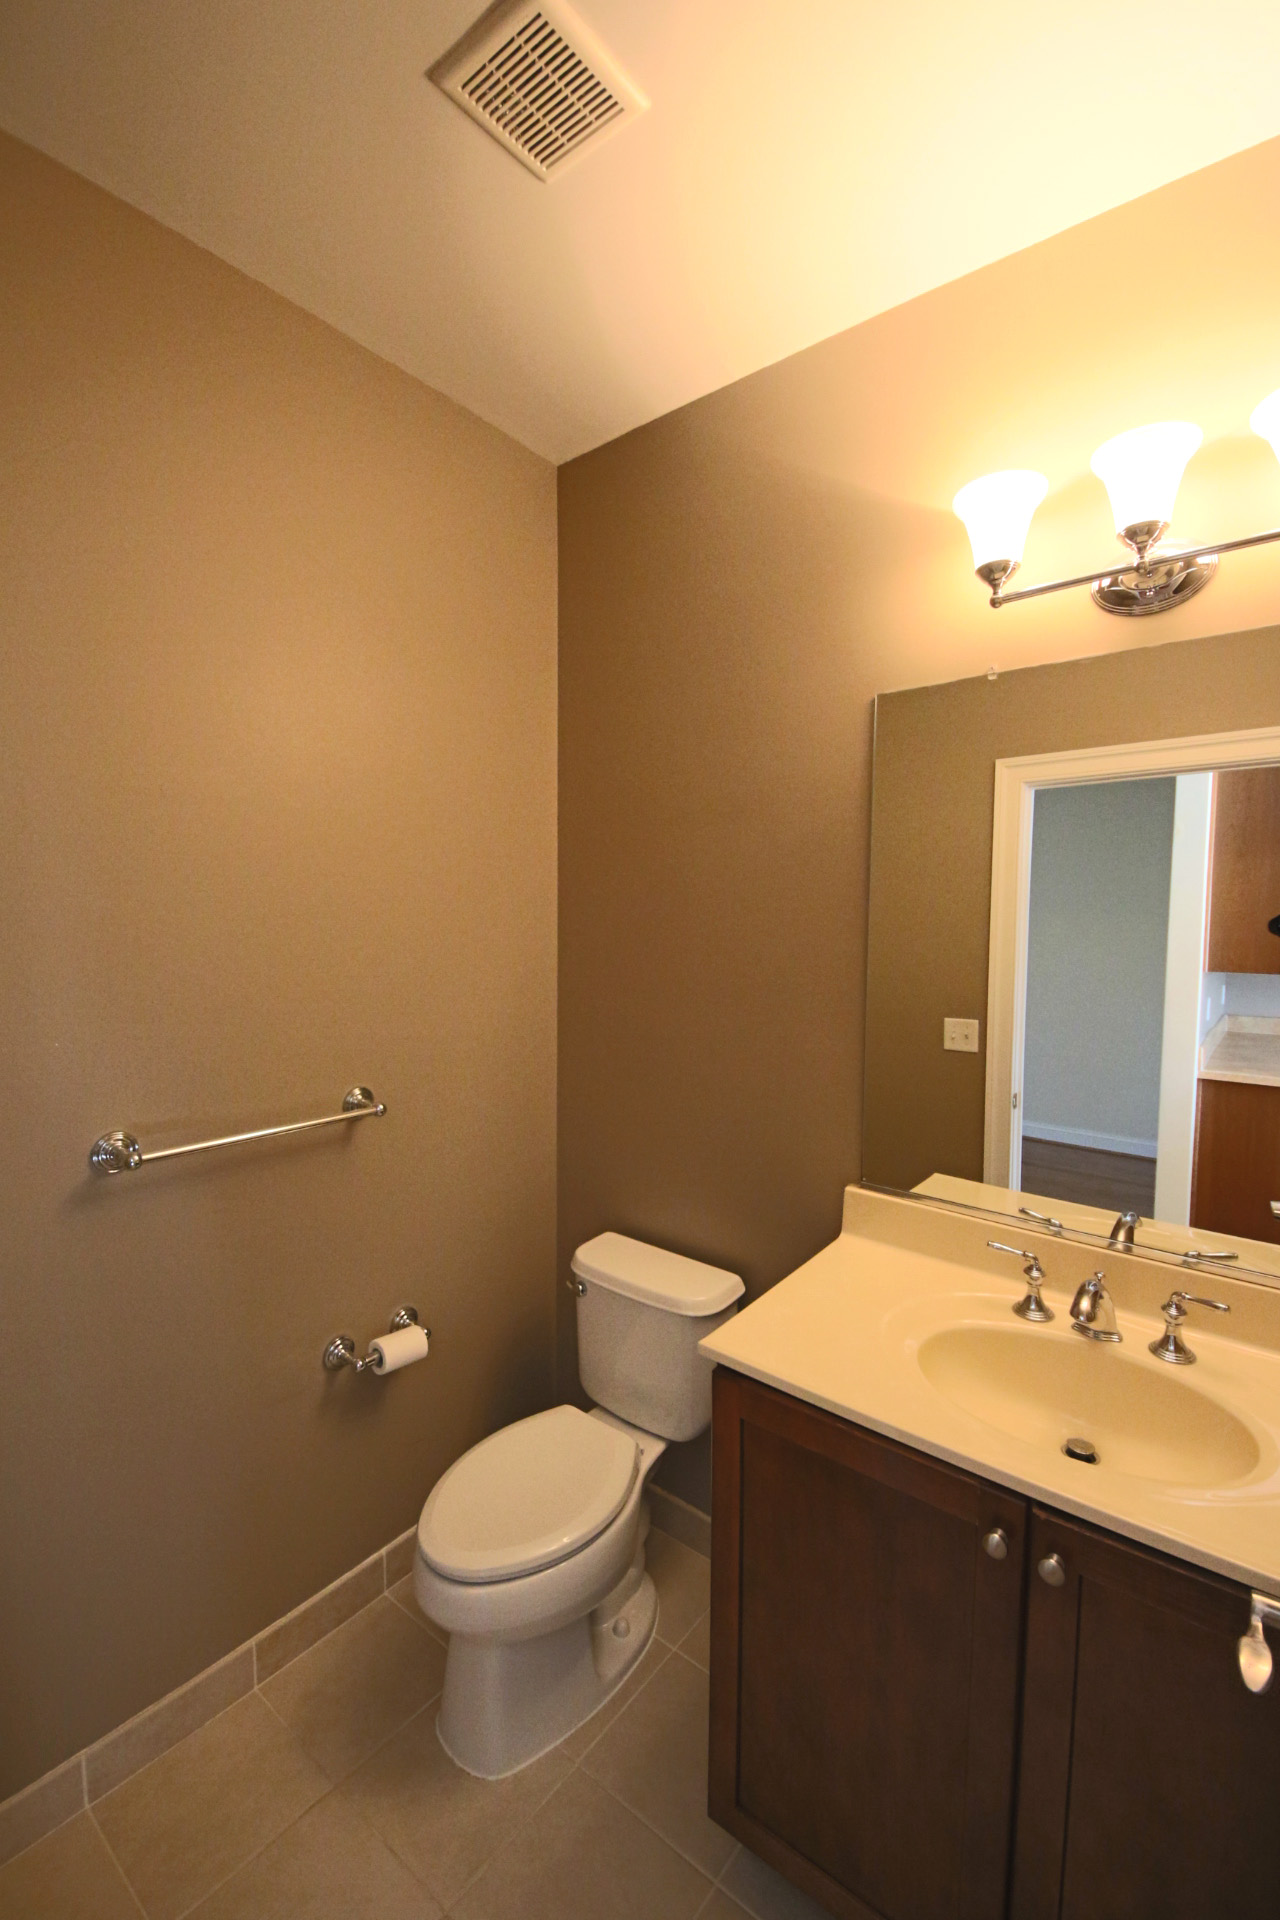 10. Bathroom 2